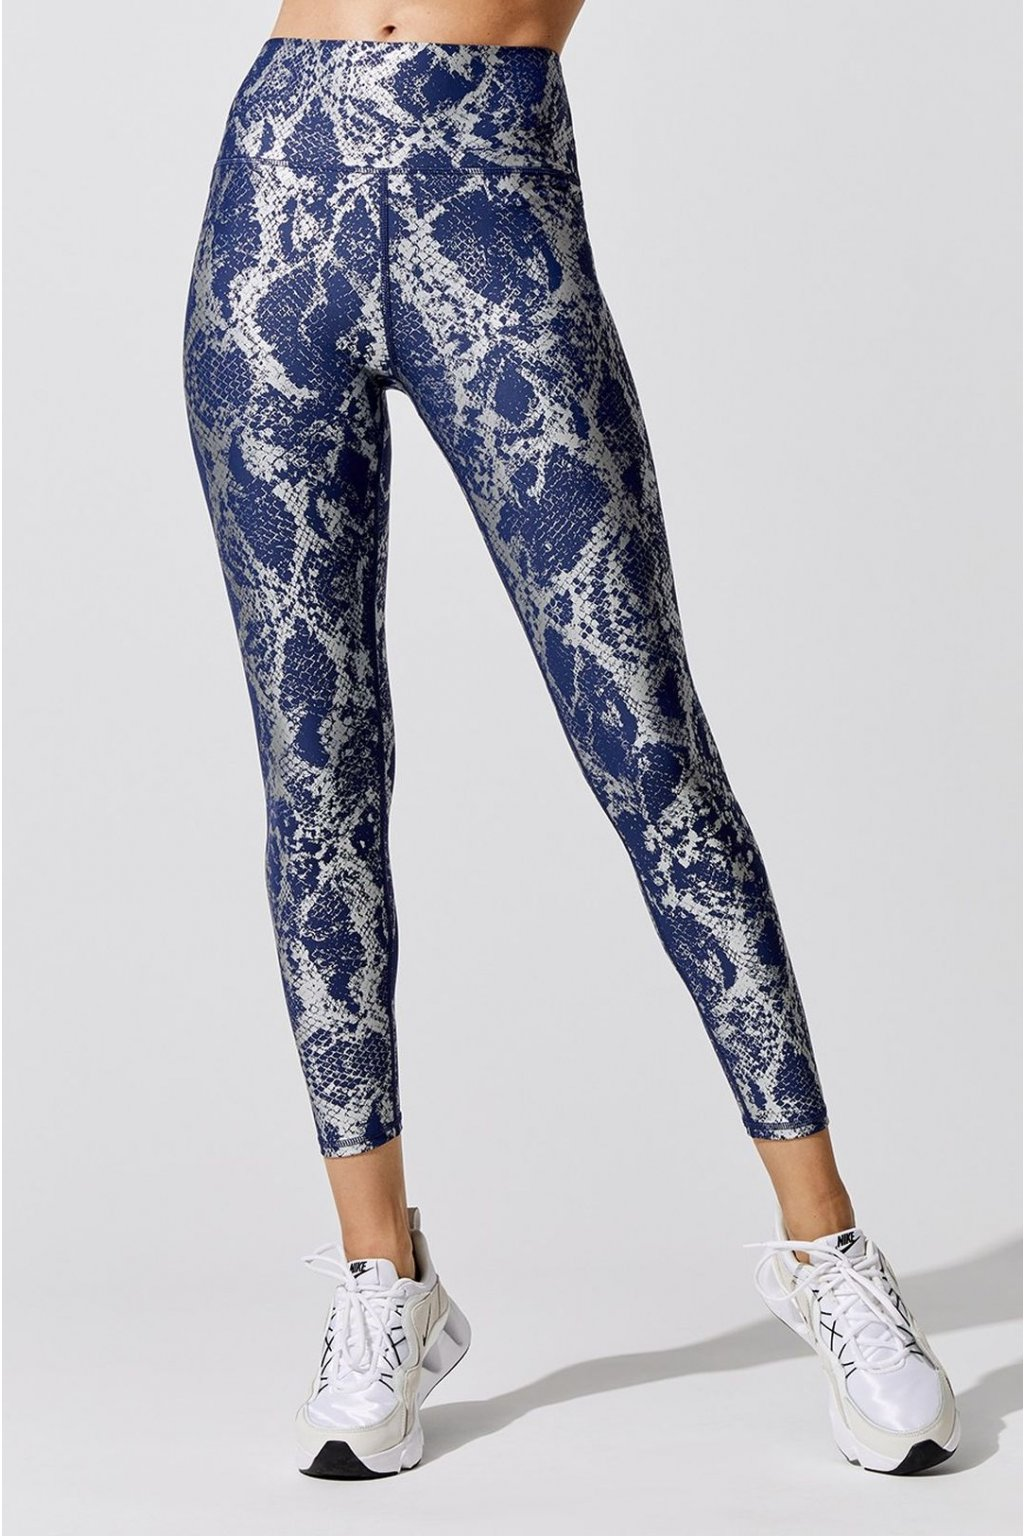 carb crb19331d snablu carbon38 metallic snake high rise full length legging bottoms navy silver 6341